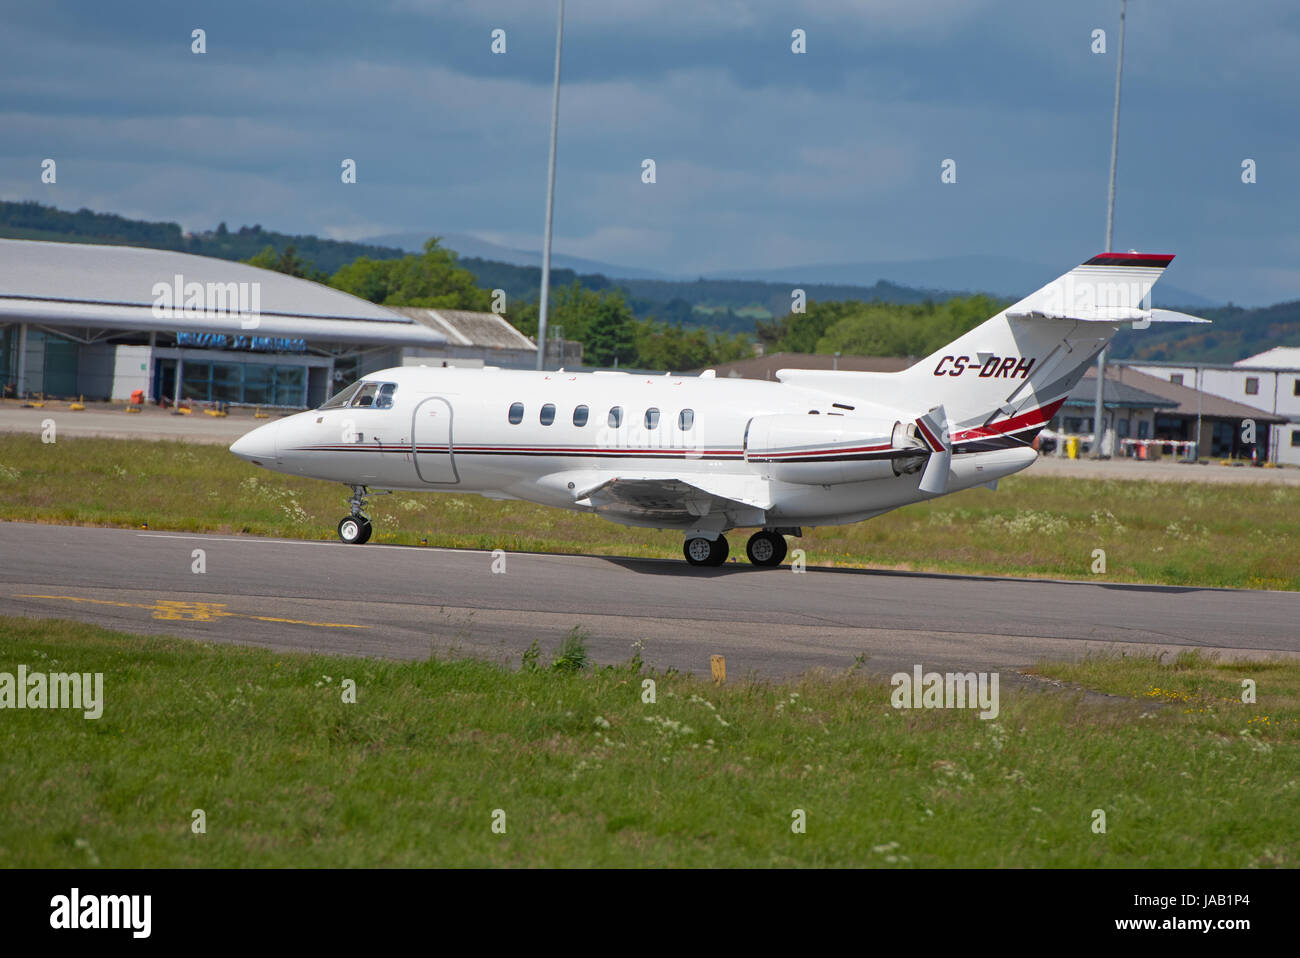 Portuguese registered  twin engined business jet arriving at Inverness airport i the Scottish Highlands. UK. - Stock Image